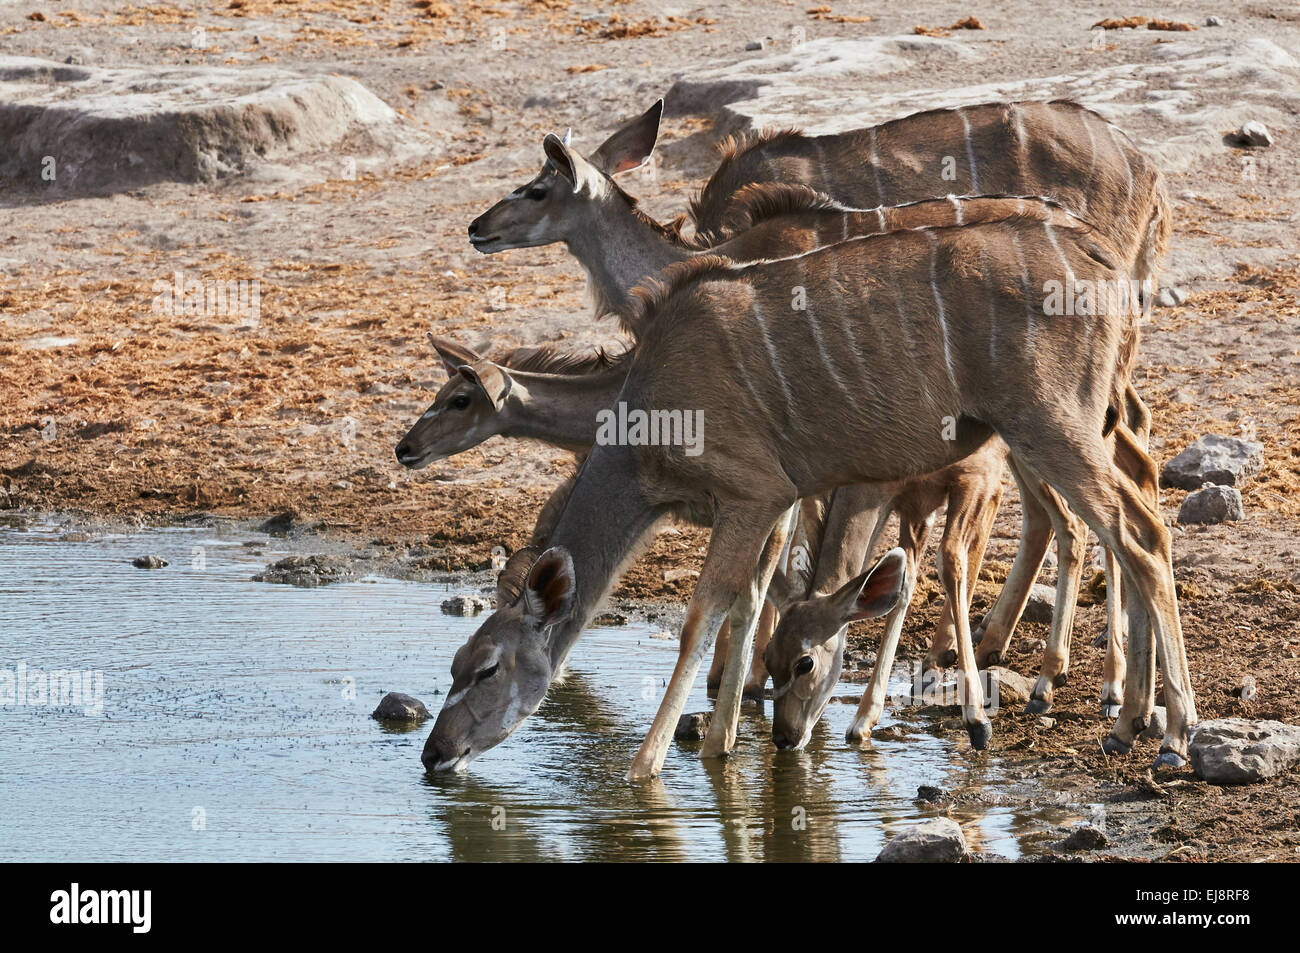 A herd of greater Kudu drinking at a waterhole in Etosha National Park - Stock Image